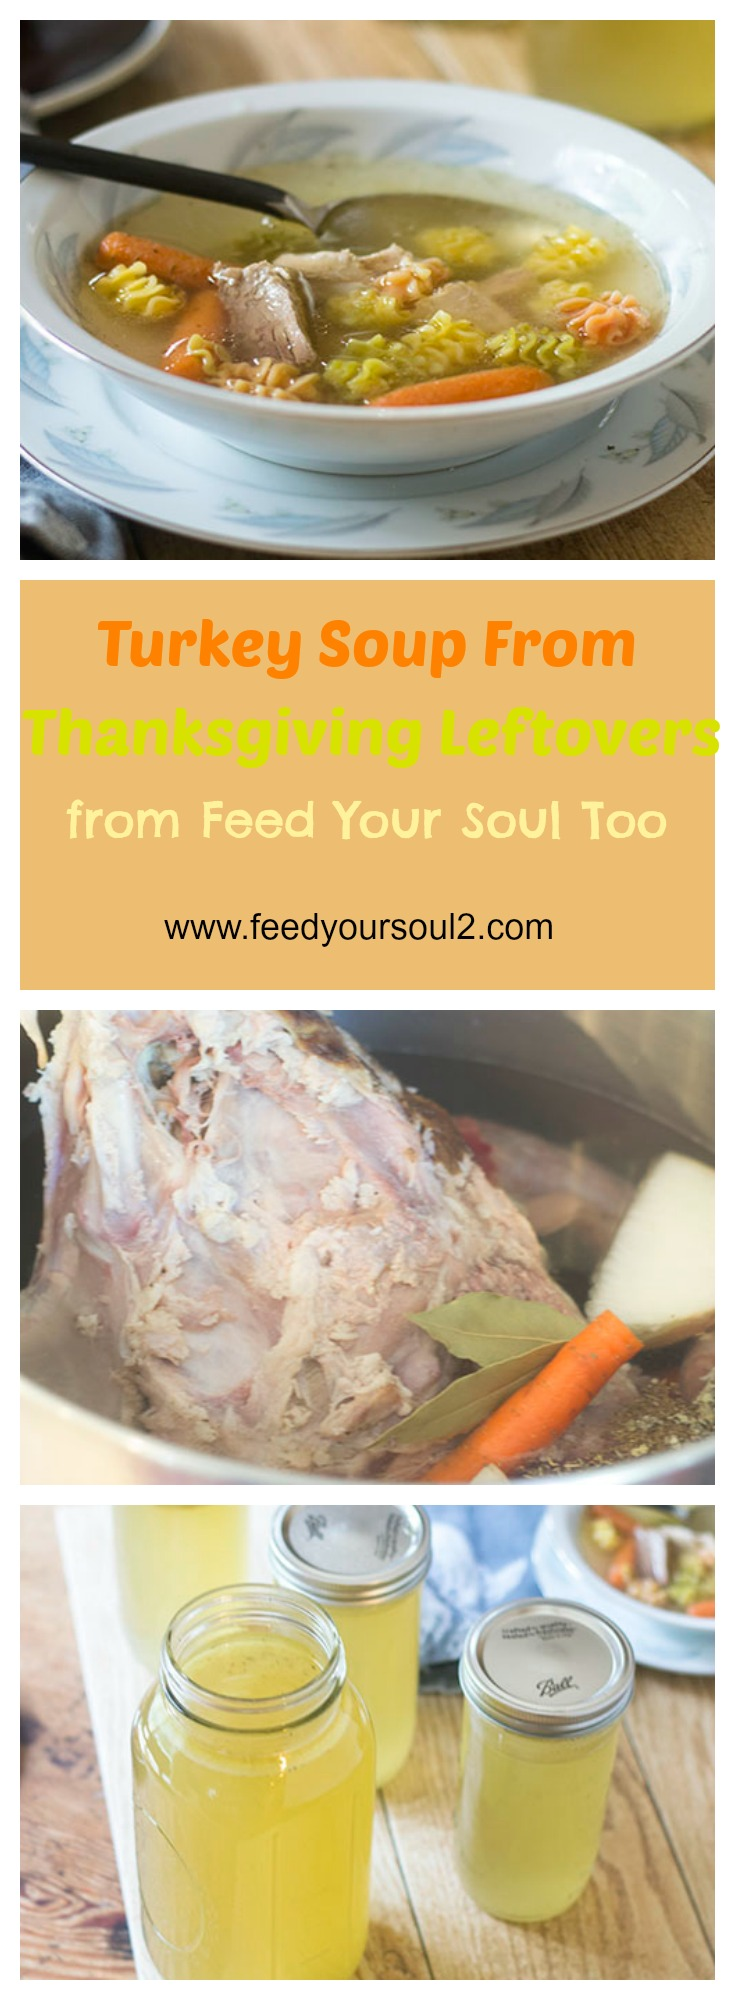 Gluten Free Turkey Noodle Soup from Thanksgiving Leftovers #DIY #Thanksgiving #Soup | feedyoursoul2.com